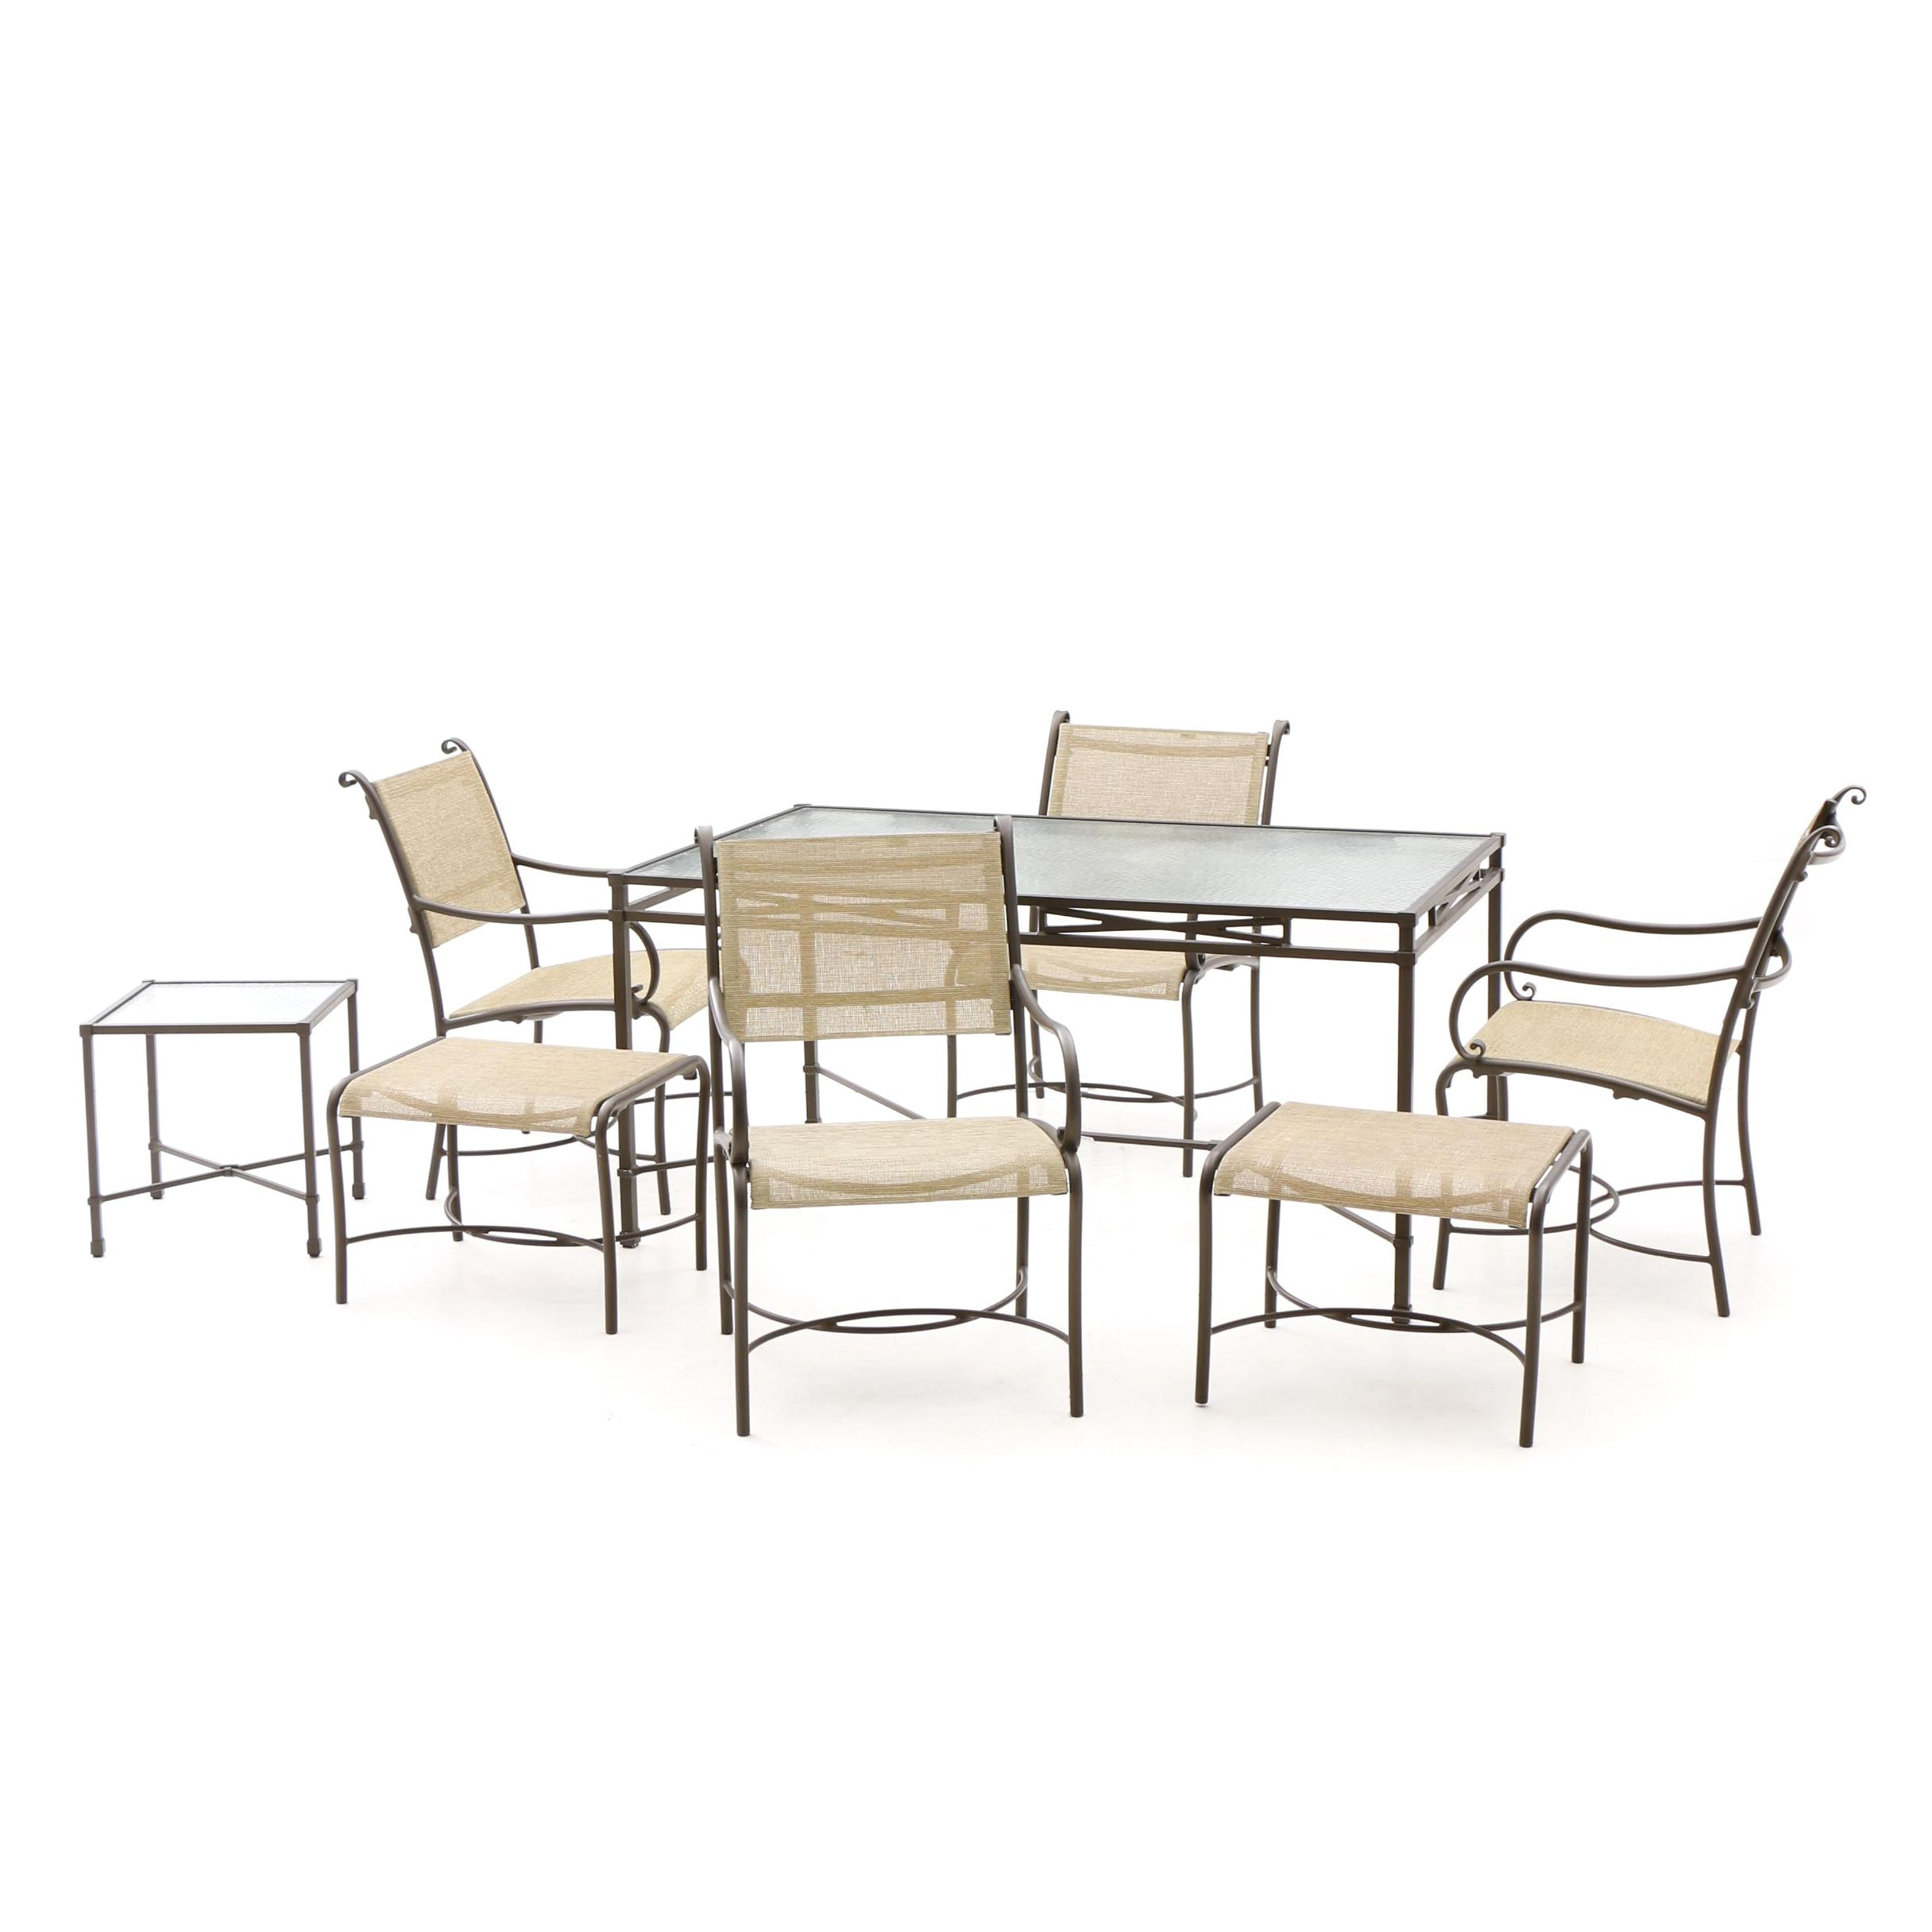 Brown Jordan Patio Chairs and Two Tables